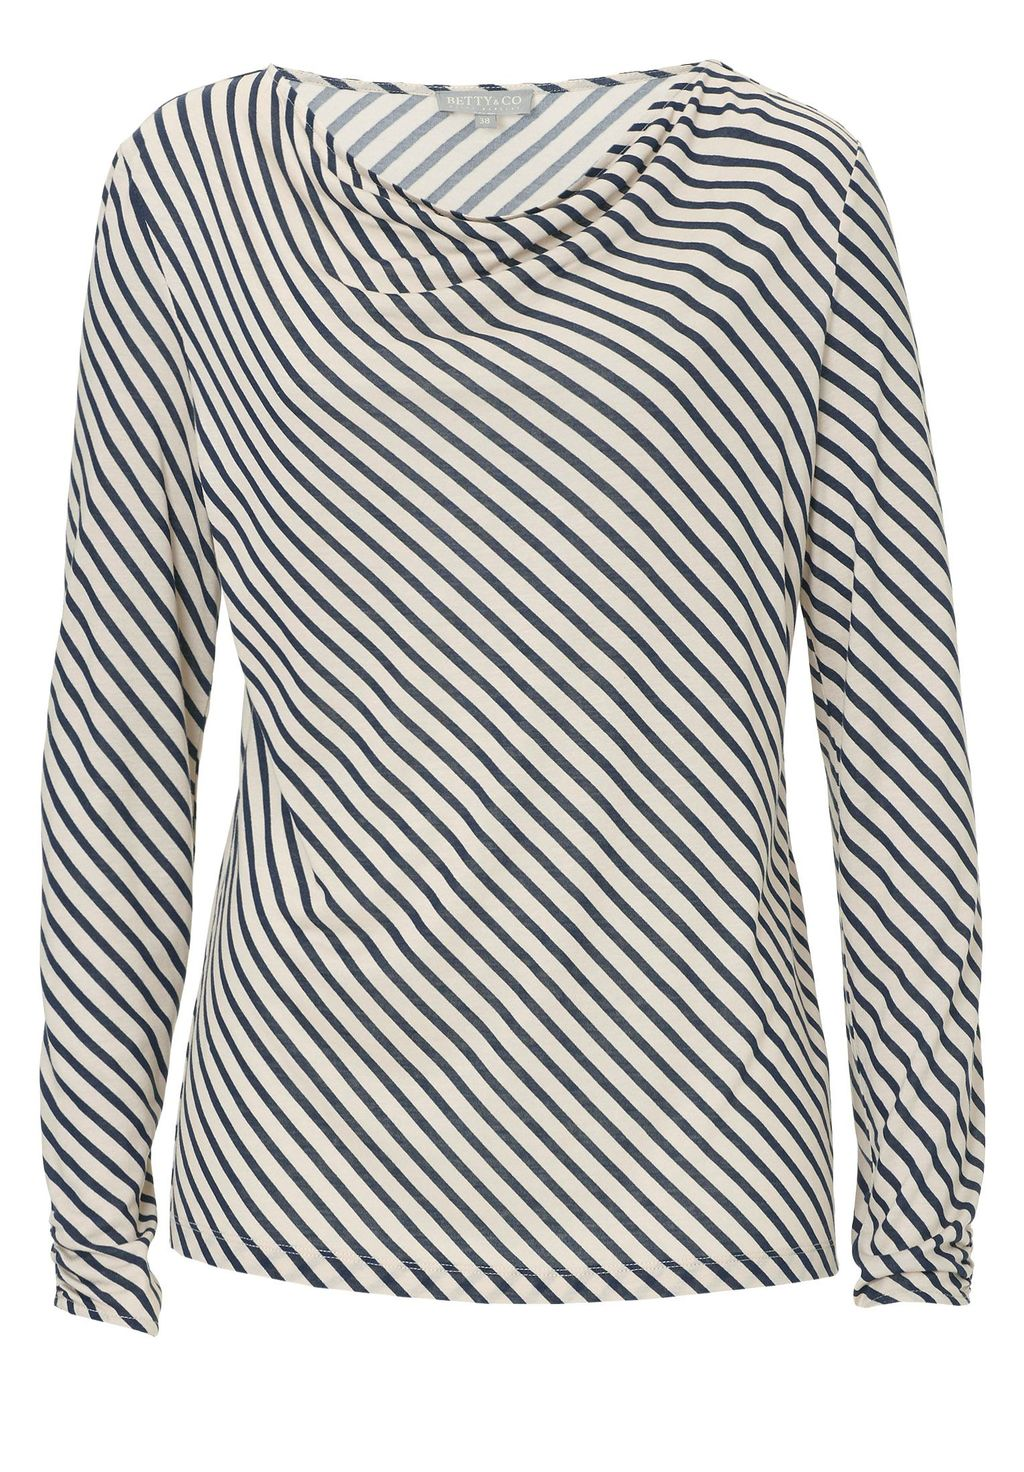 Betty & Co. Striped Cowl Neck Top, Multi Coloured - neckline: cowl/draped neck; pattern: striped; secondary colour: white; predominant colour: black; occasions: casual; length: standard; style: top; fibres: viscose/rayon - 100%; fit: body skimming; sleeve length: long sleeve; sleeve style: standard; pattern type: fabric; pattern size: standard; texture group: jersey - stretchy/drapey; multicoloured: multicoloured; season: a/w 2015; wardrobe: highlight